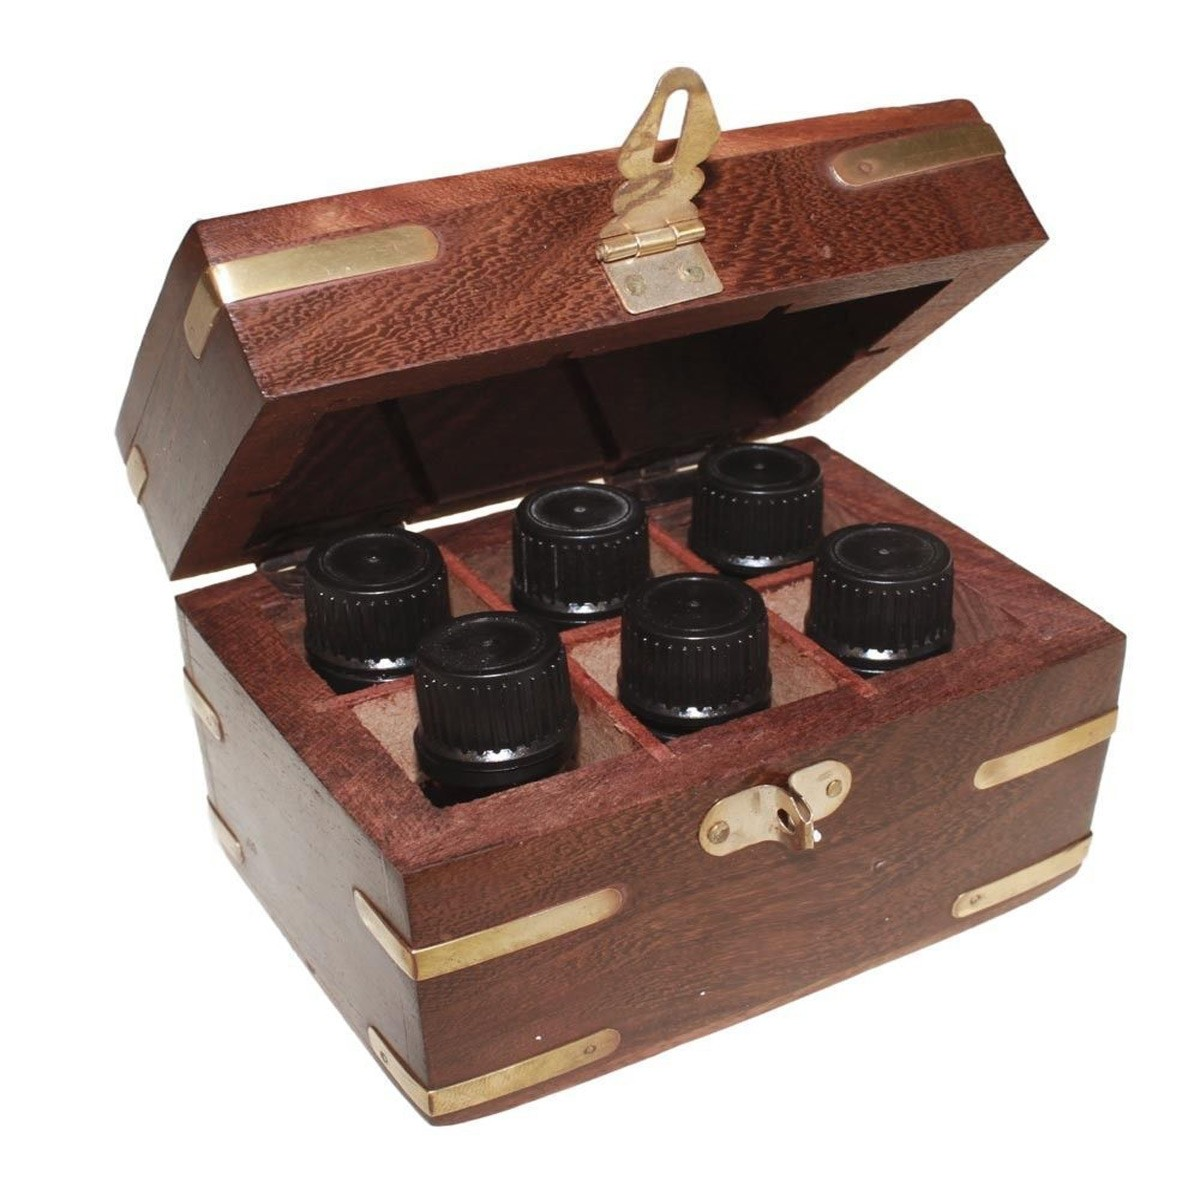 Aromatherapy Set Carved Wooden Box 6 Essential Oils